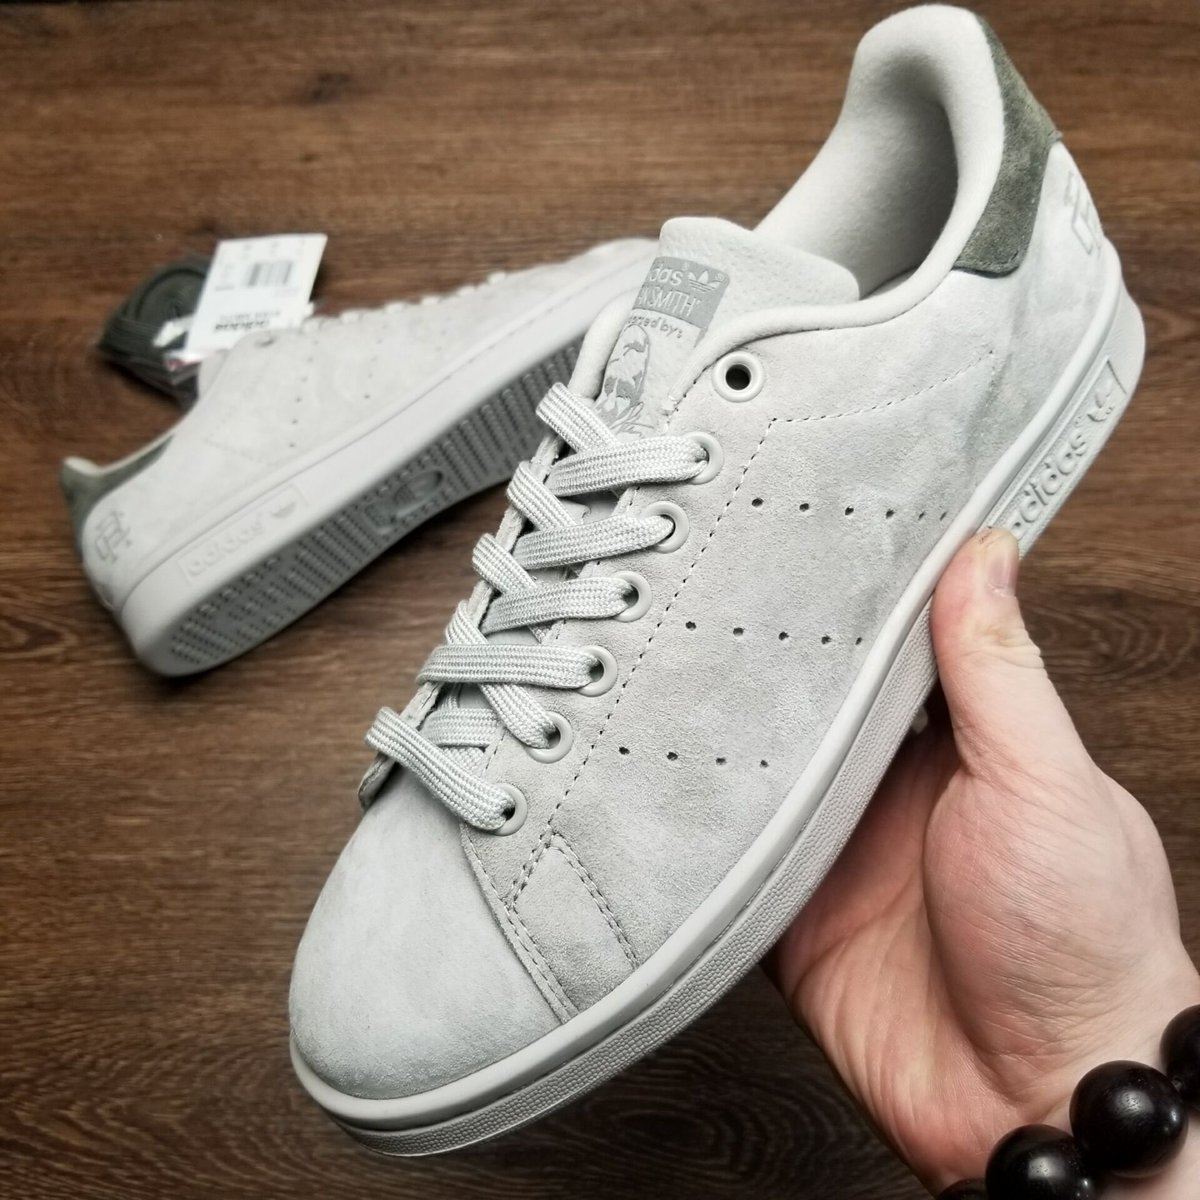 Reigning champ x stan smith